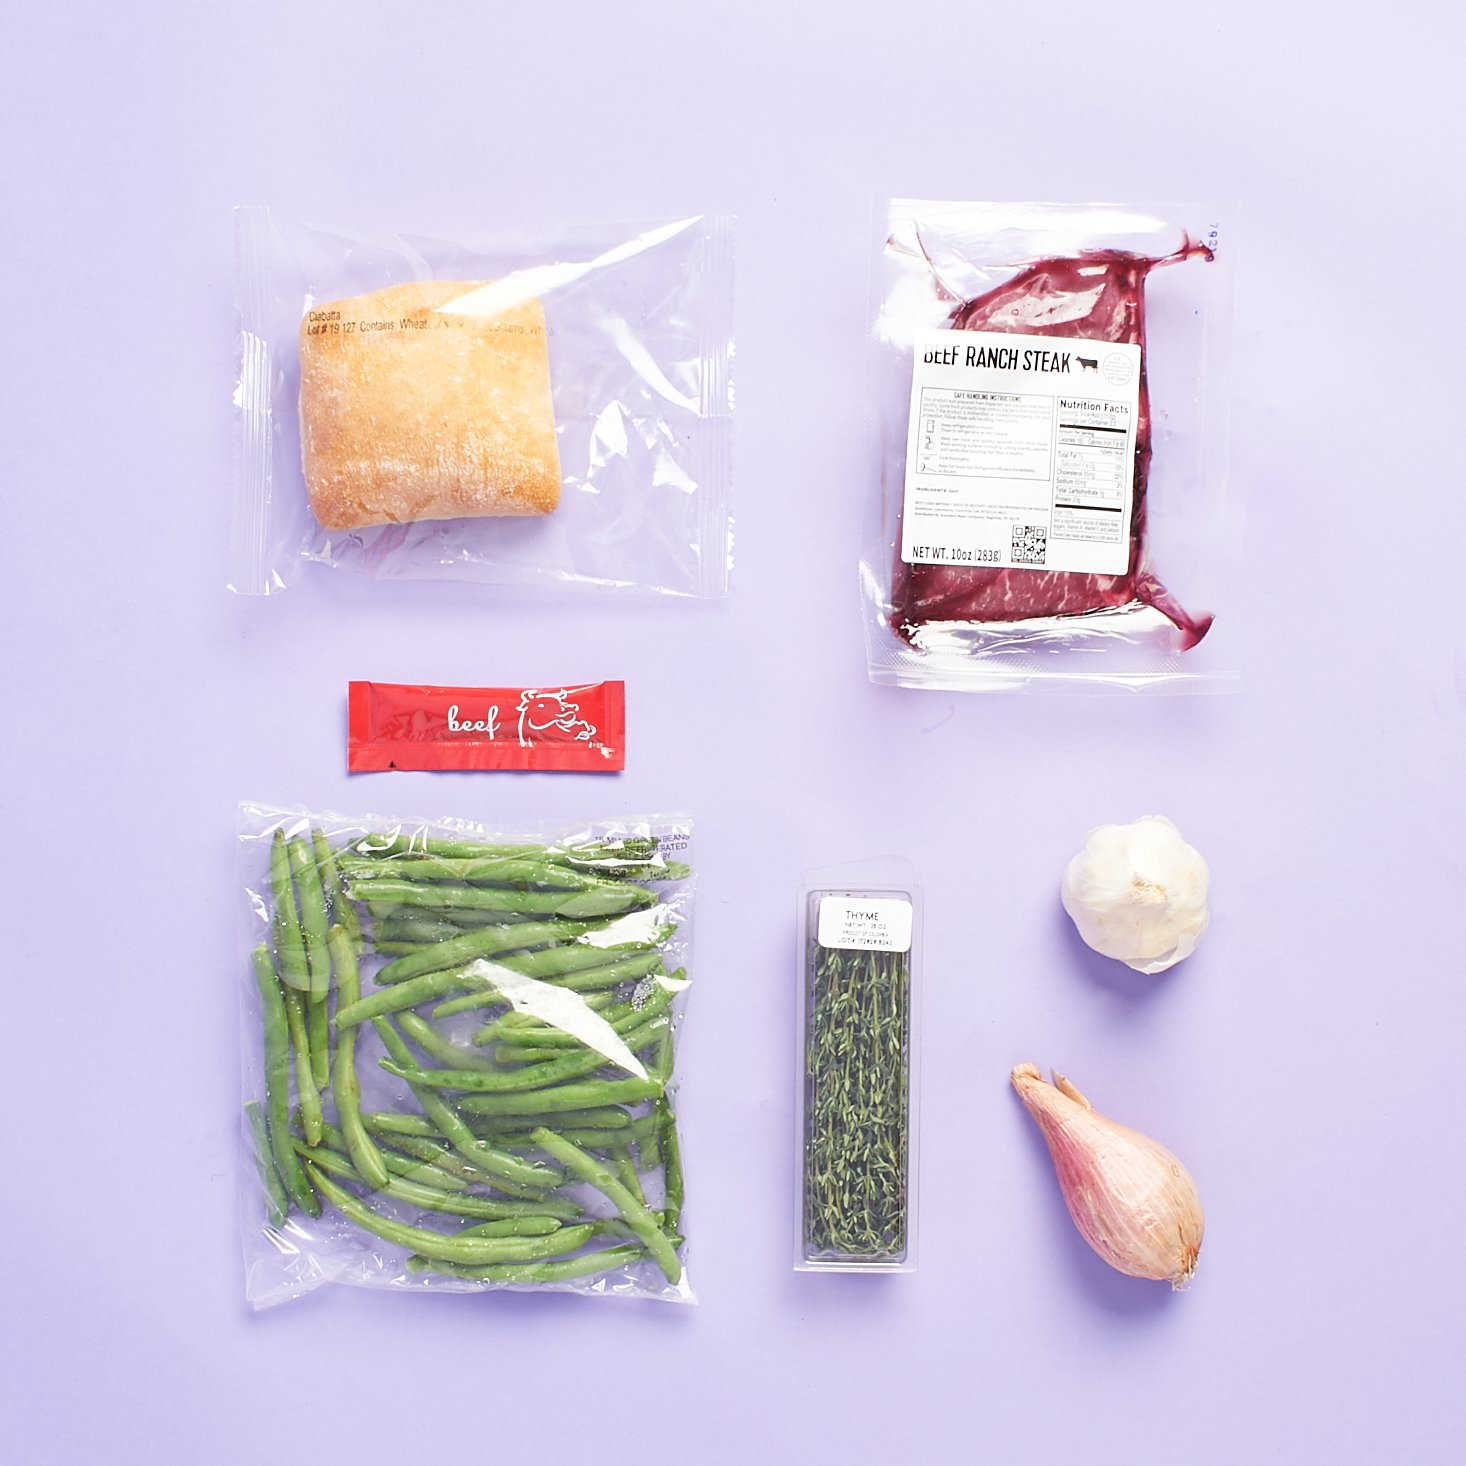 ingredients for Party Thyme Steak with Garlic Ciabatta and Roasted Green Beans in group